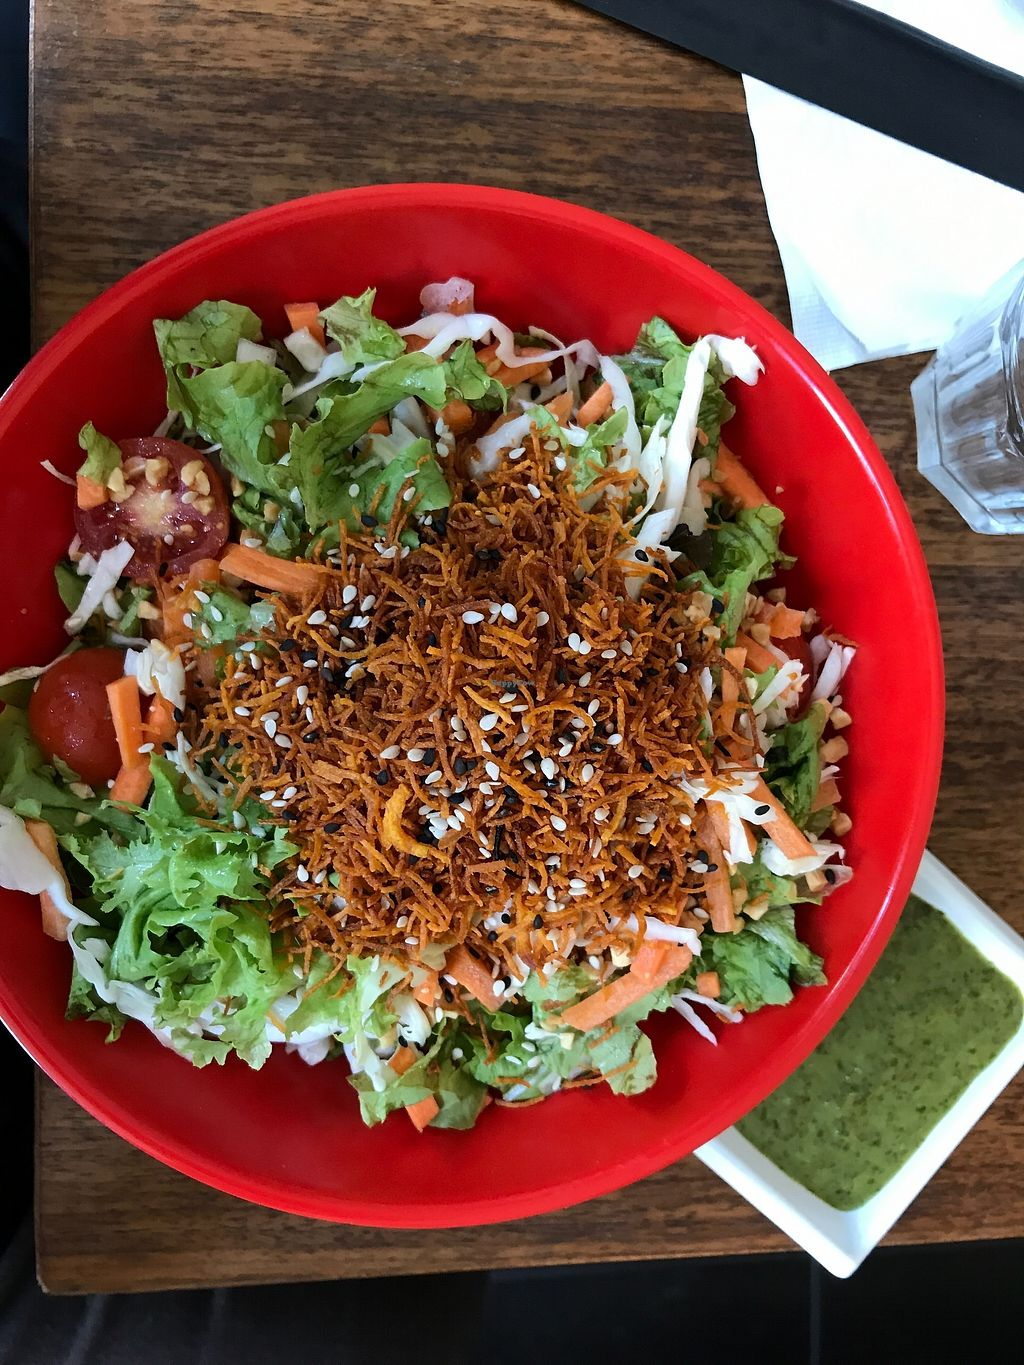 """Photo of The Green Roll  by <a href=""""/members/profile/Brok%20O.%20Lee"""">Brok O. Lee</a> <br/>Vegan Green House salad <br/> August 27, 2017  - <a href='/contact/abuse/image/53638/297804'>Report</a>"""